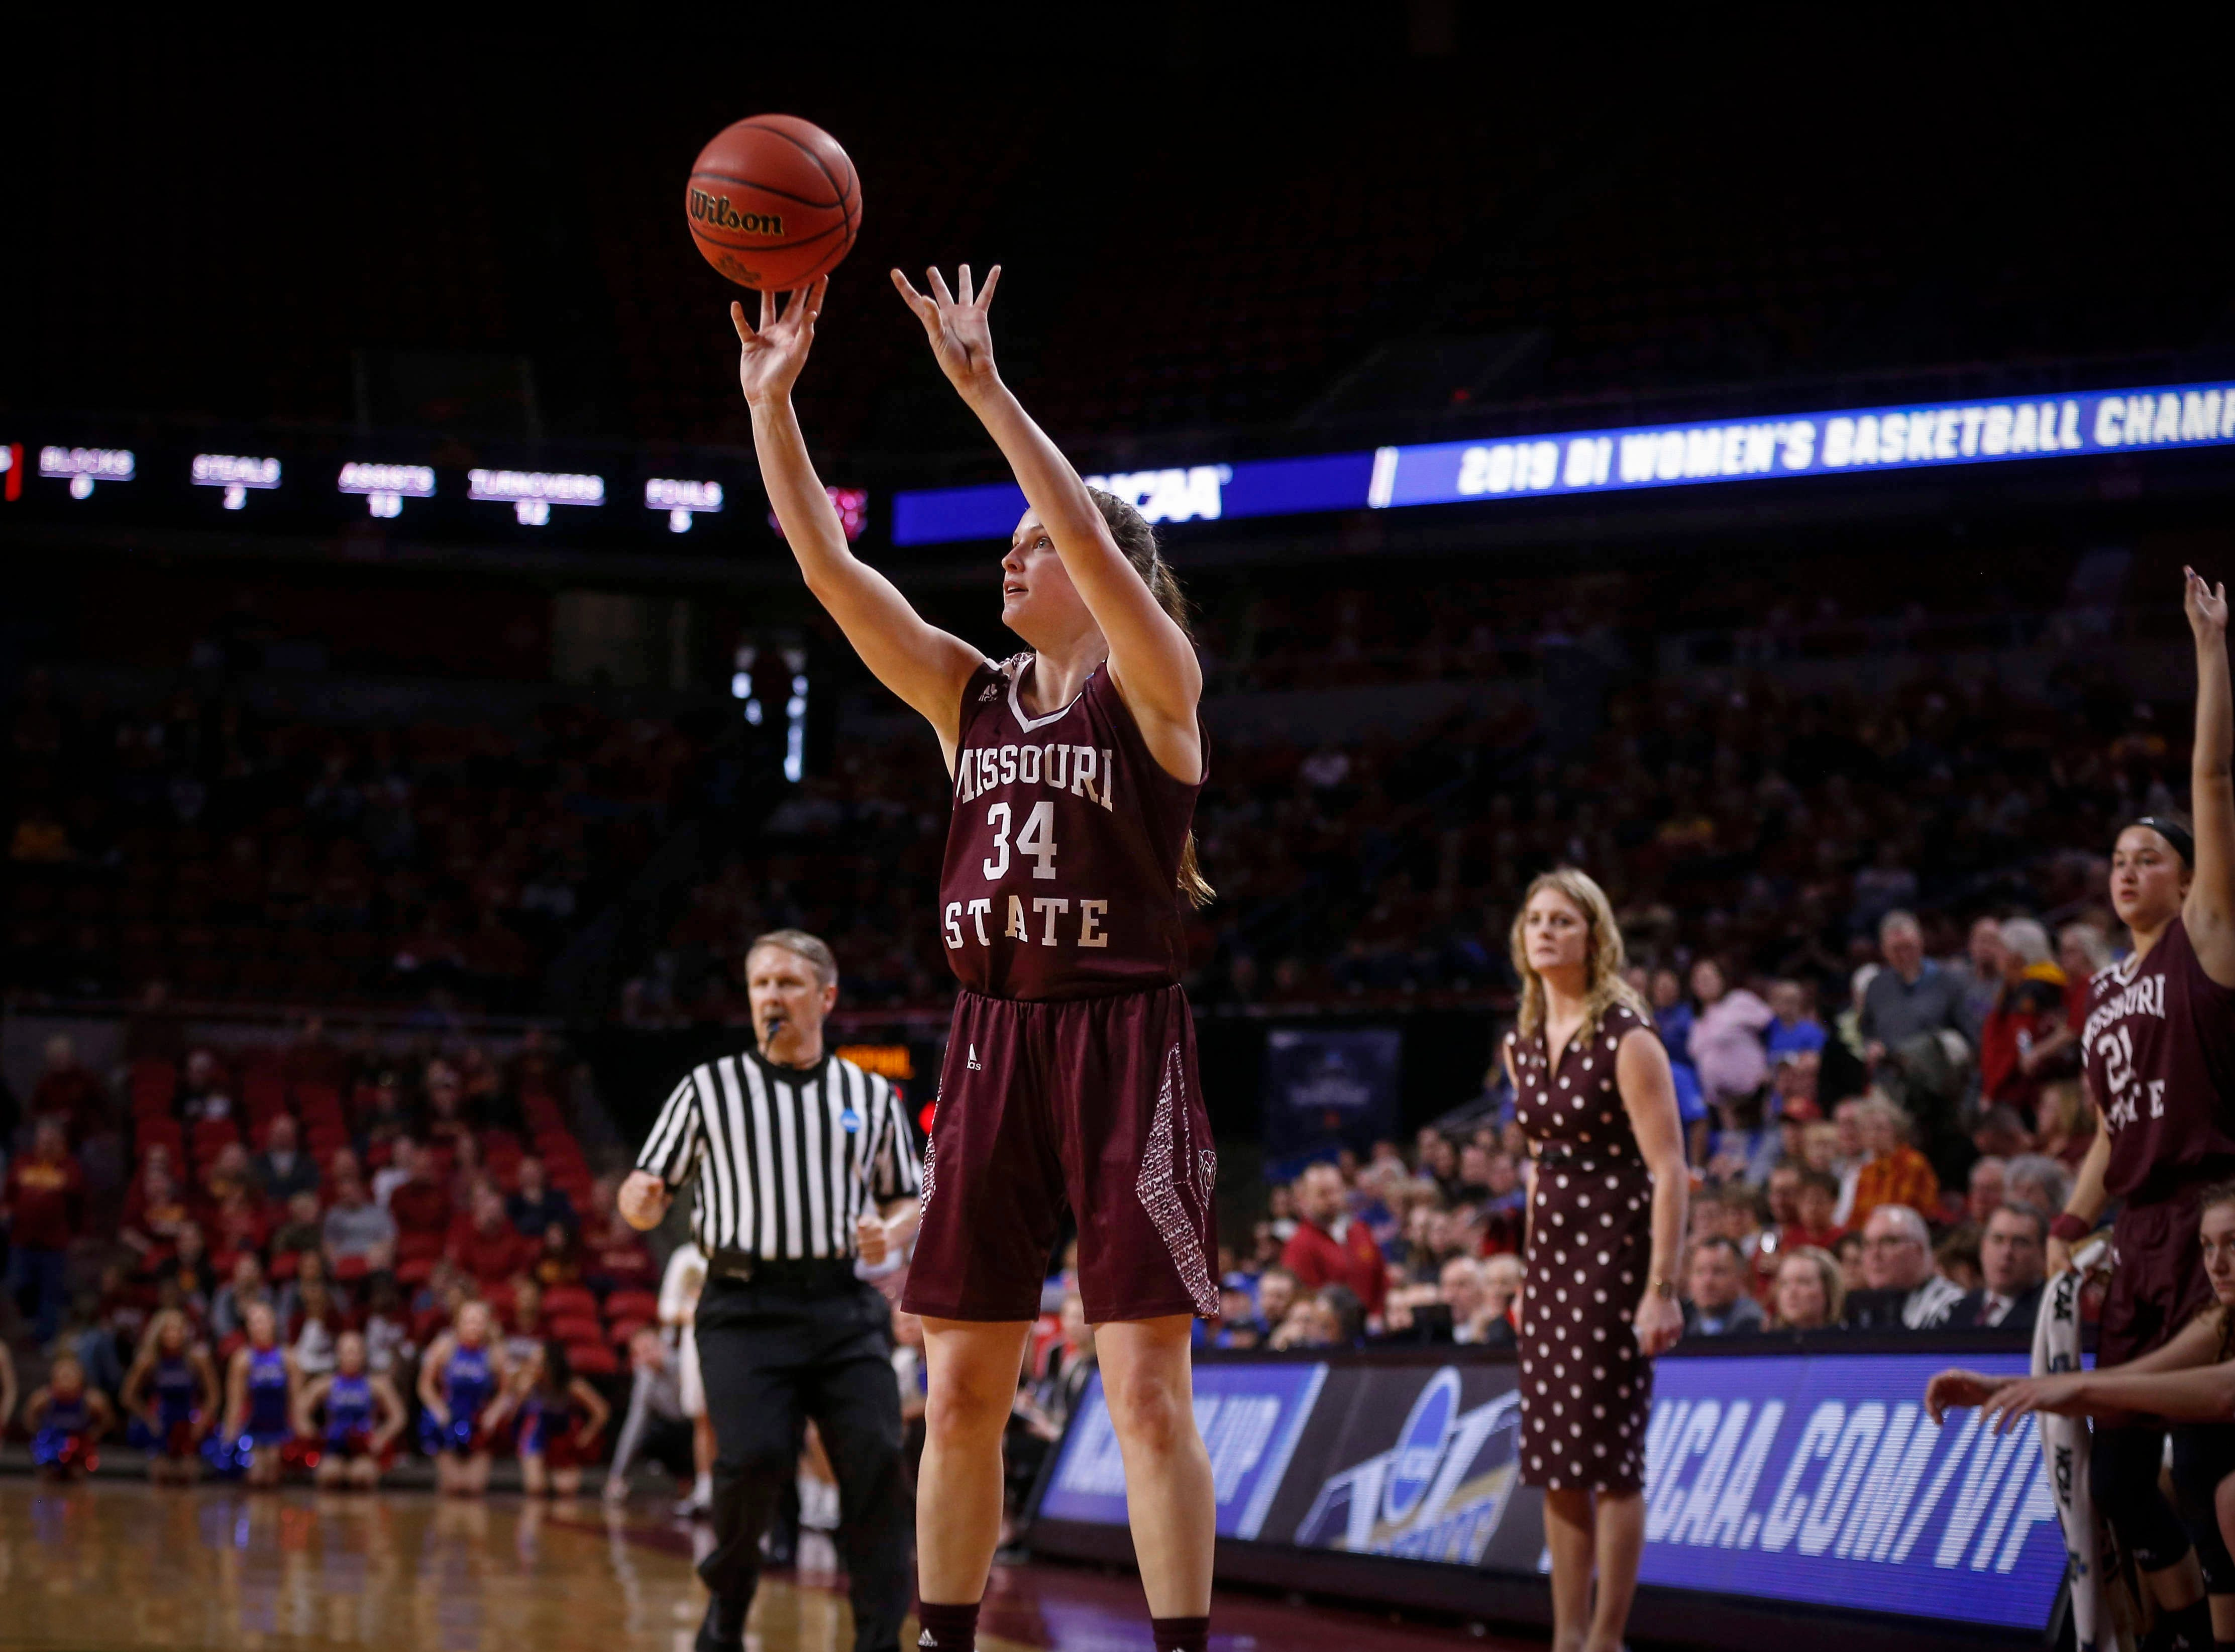 Missouri State freshman Sydney Manning fires a three-point field goal in the third quarter against DePaul on Saturday, March 23, 2019, at Hilton Coliseum in Ames.